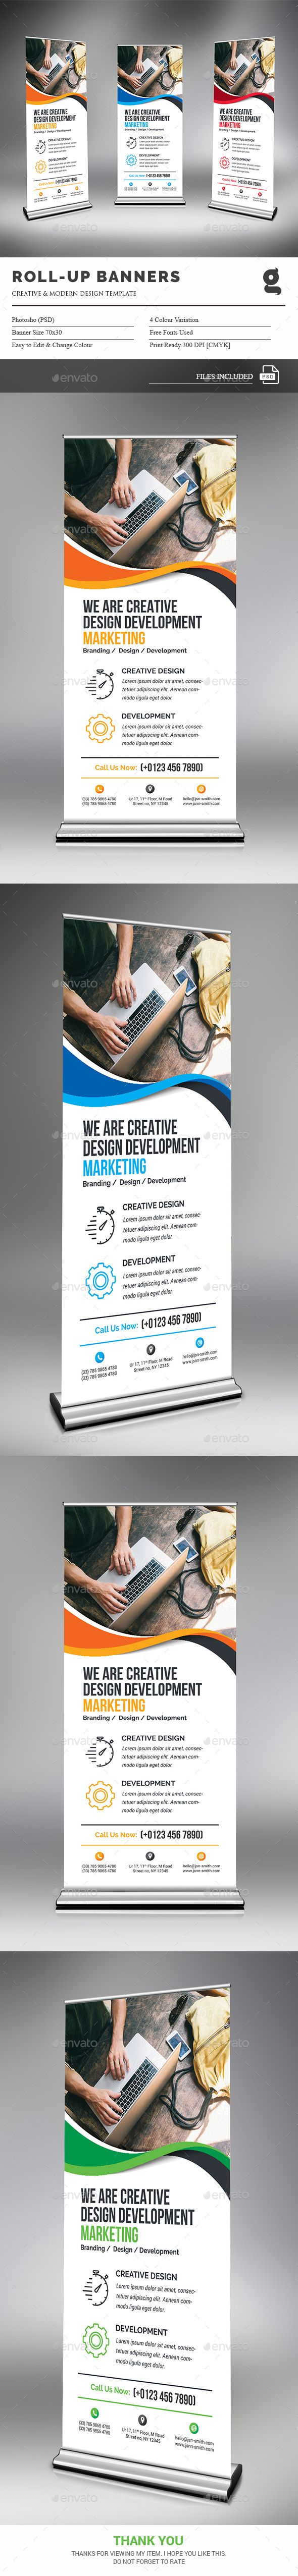 Rollup Banner — Photoshop PSD #logo #modern design • Available here → grap...